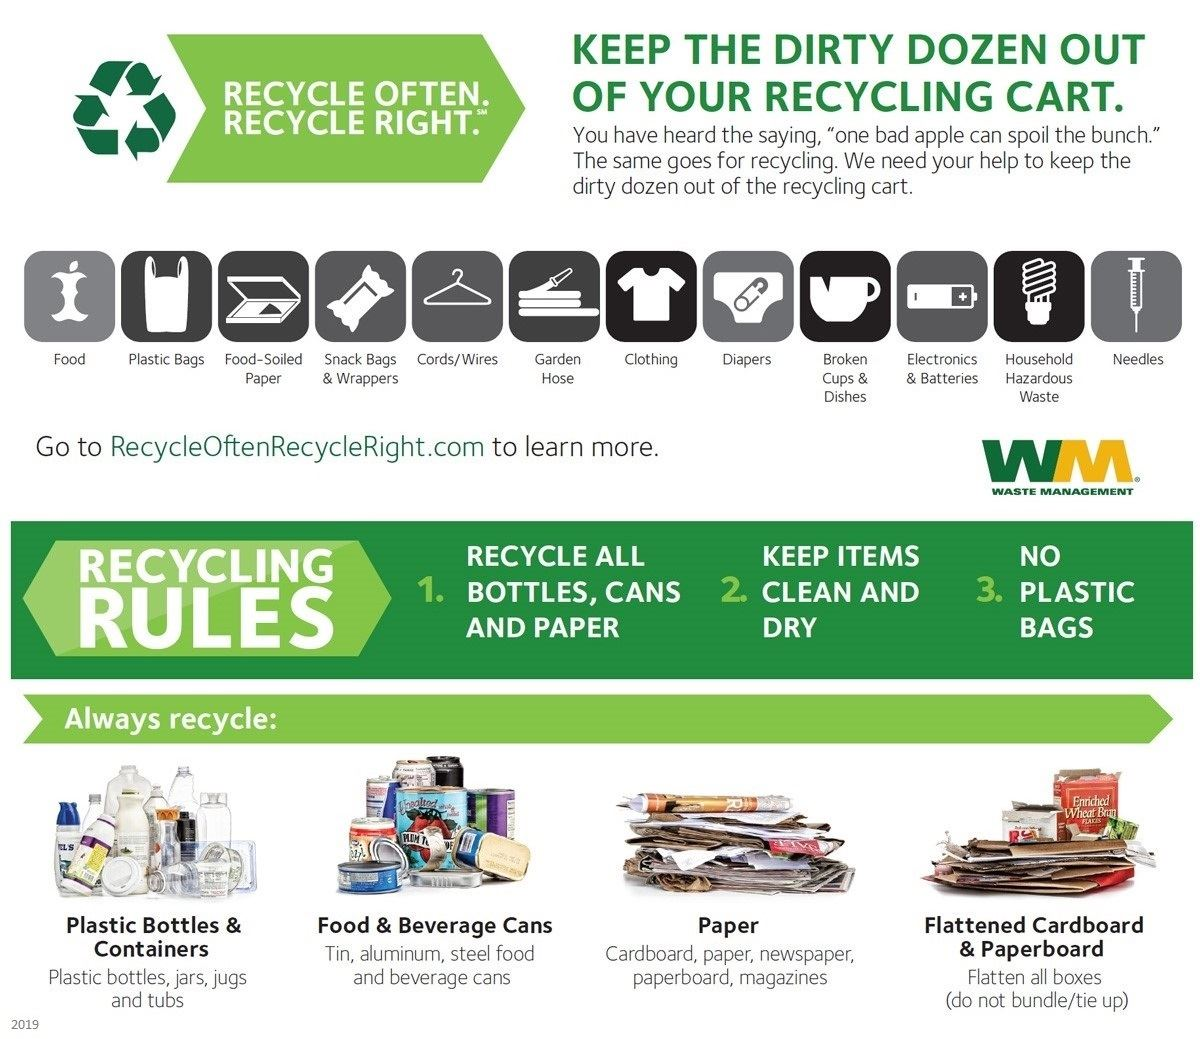 WM-Recycle Poster